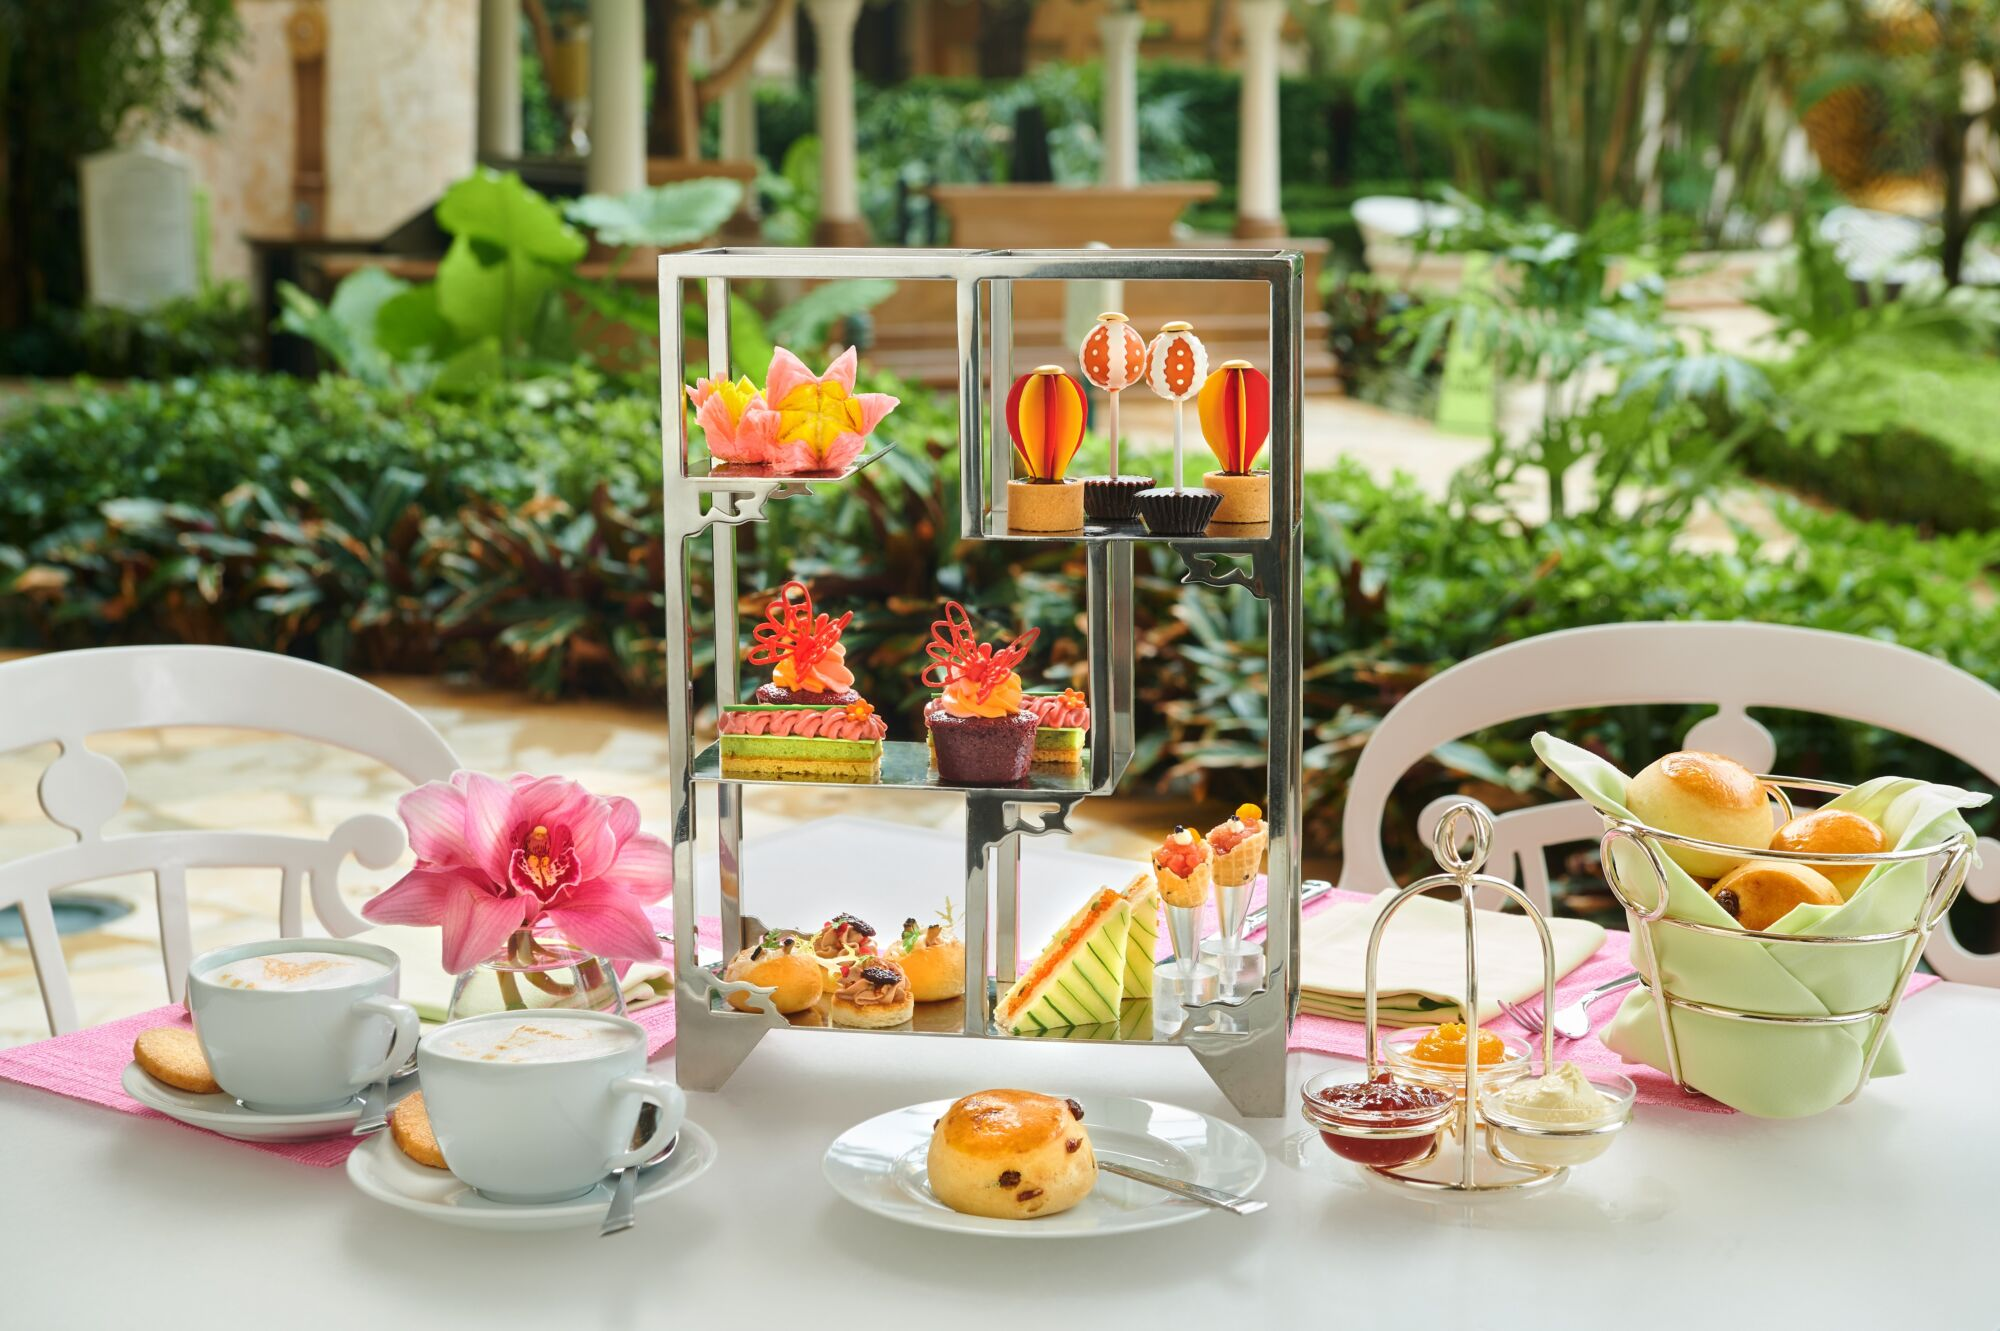 Cafe Esplanada Themed Afternoon Tea Set for the Lantern Festival Where to Eat Macau October